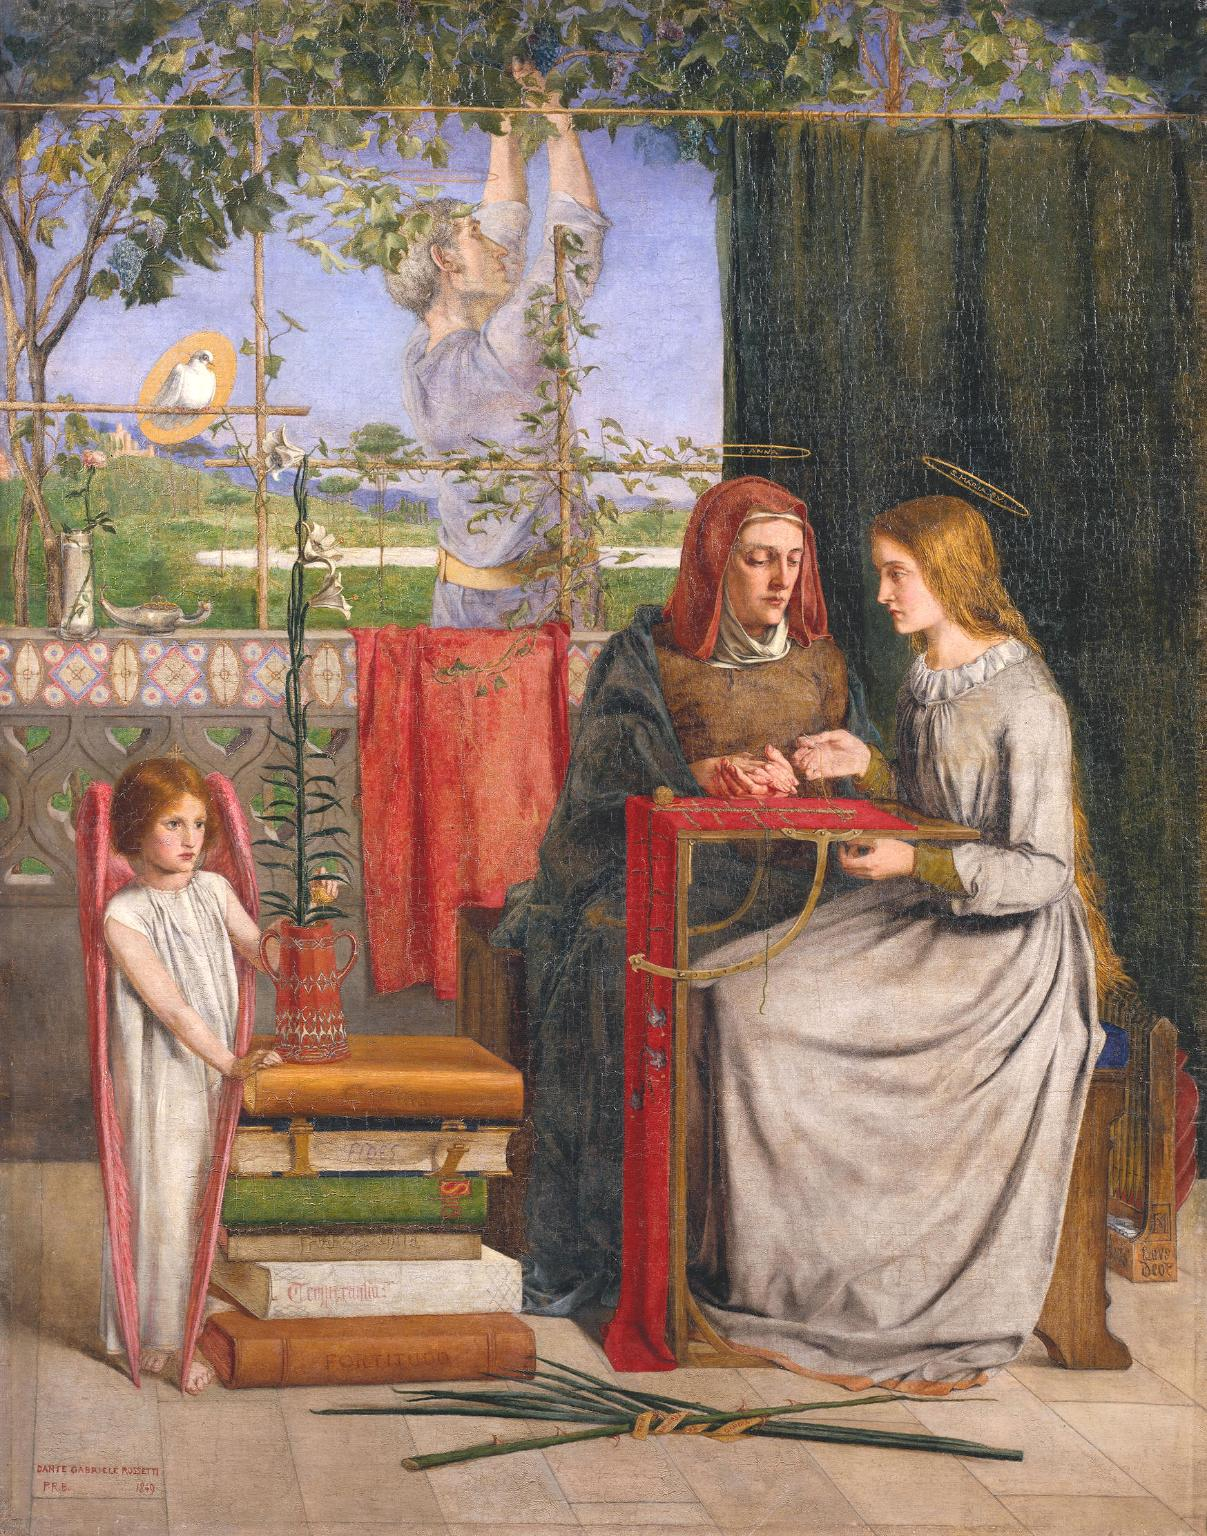 https://upload.wikimedia.org/wikipedia/commons/7/72/Dante_Gabriel_Rossetti_-_The_Girlhood_of_Mary_Virgin.jpg